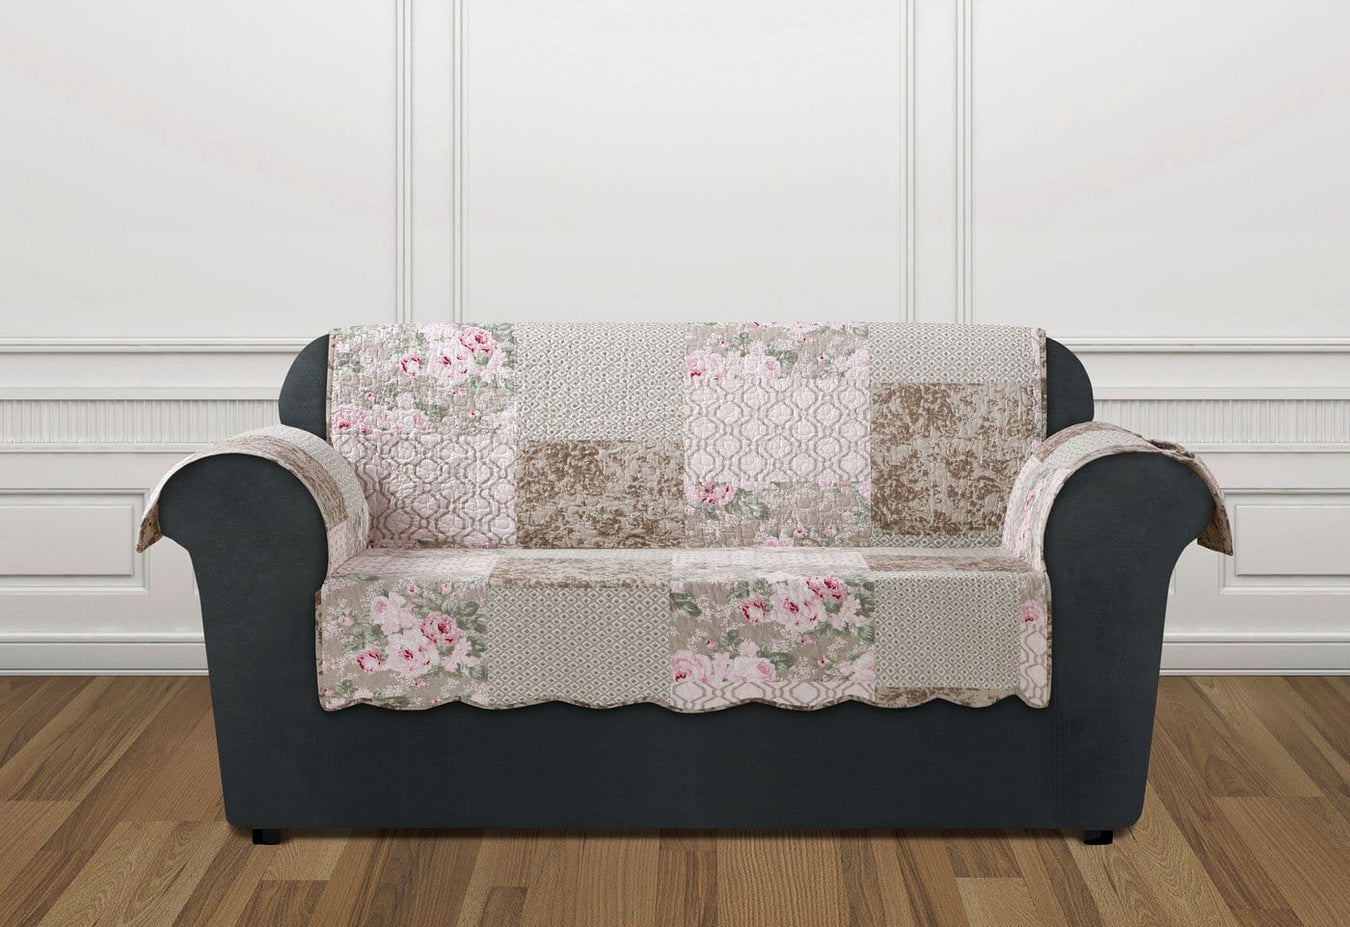 Heirloom Quilt Loveseat Furniture Cover | English Rose | 100% Cotton | Machine Washable